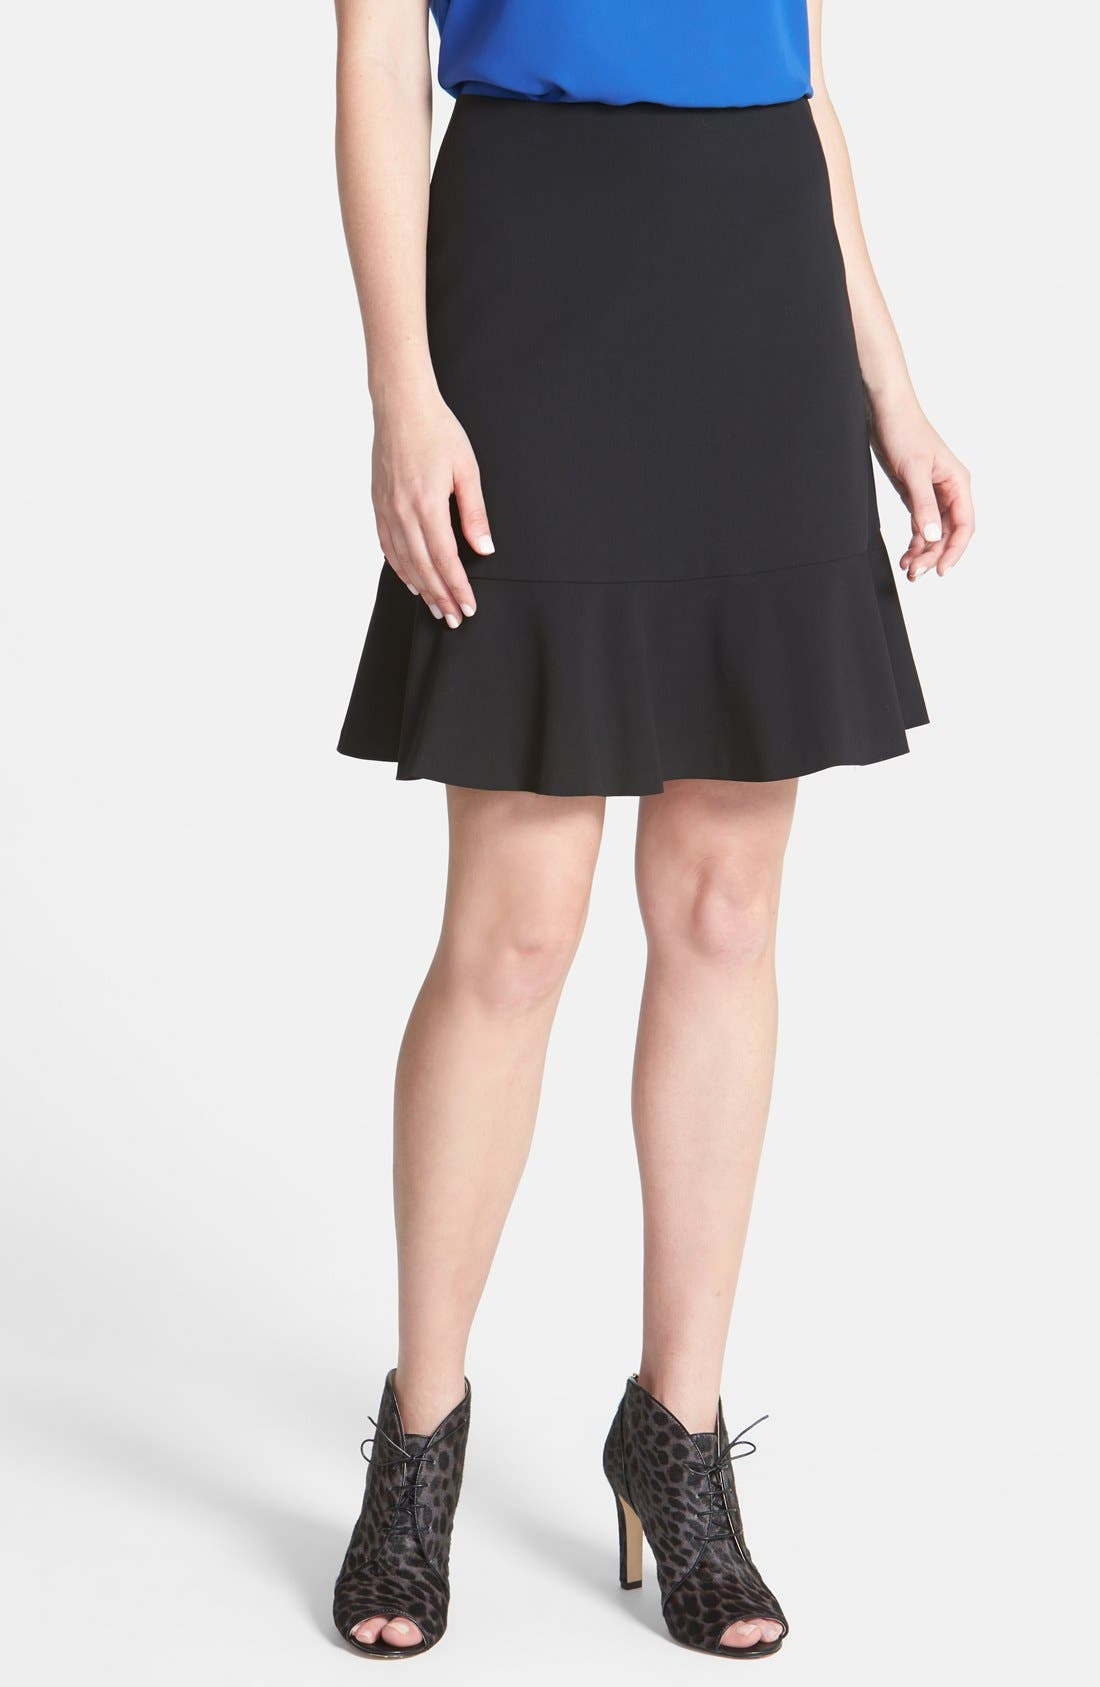 VINCE CAMUTO Ruffle Hem Skirt, Main, color, 001